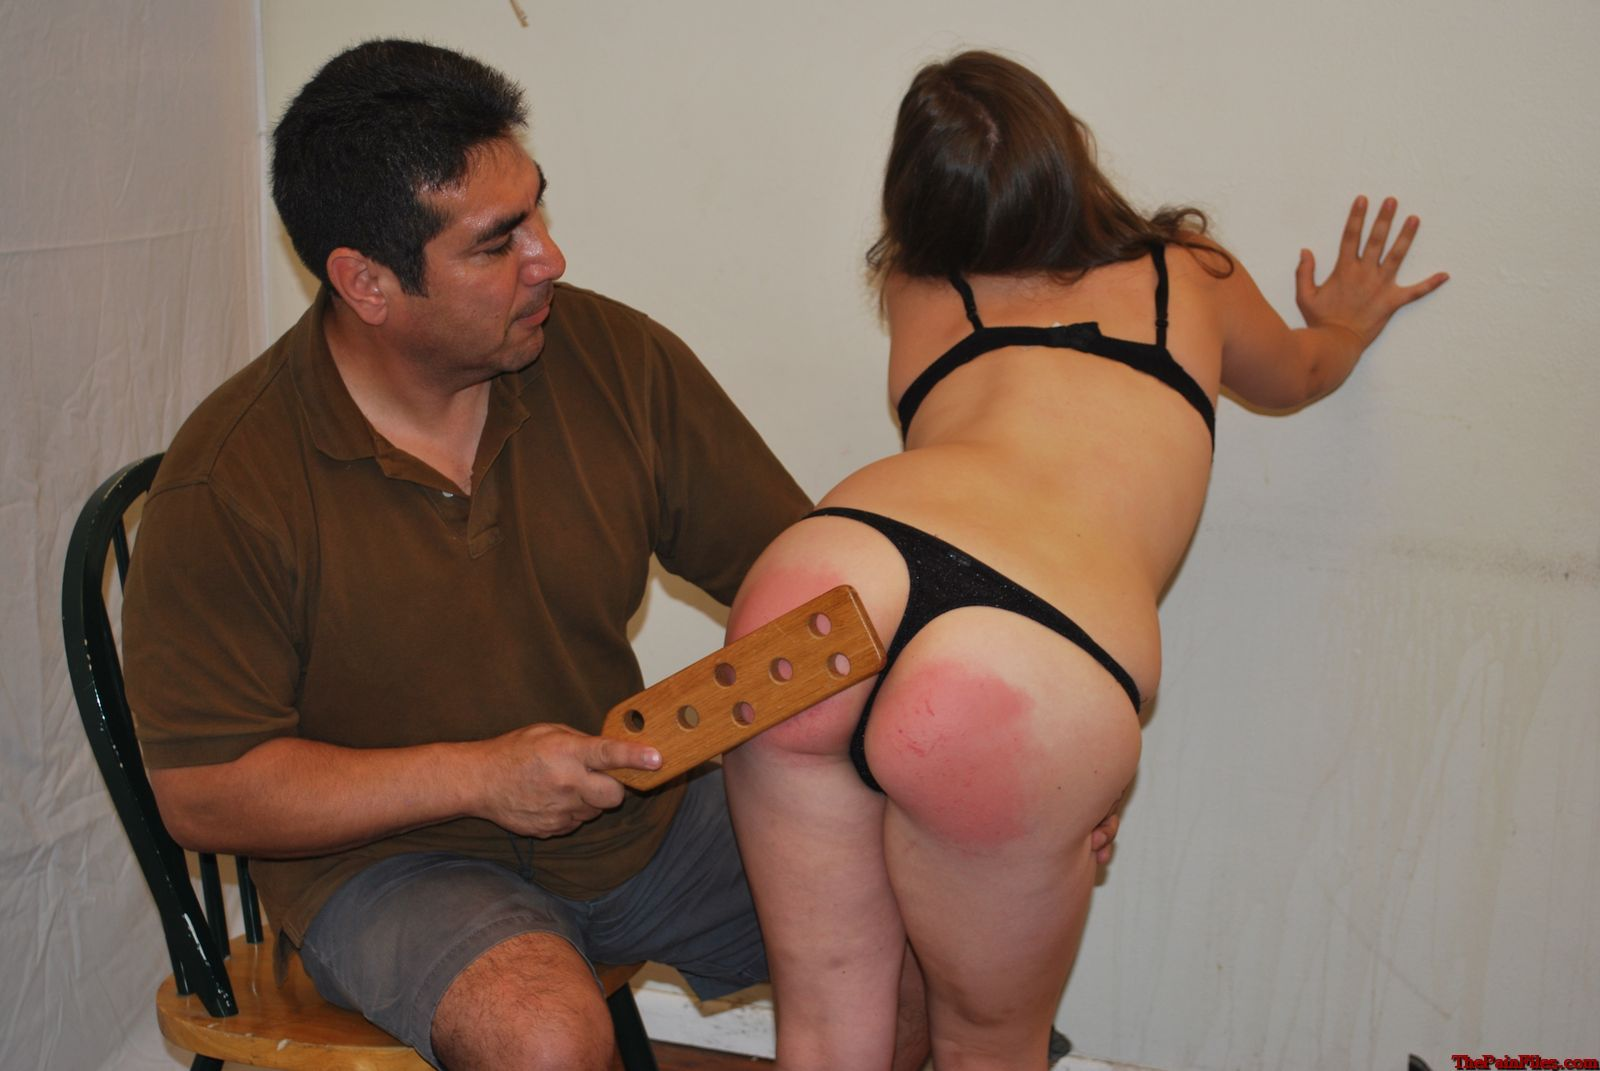 pain bdsm spank quality porn